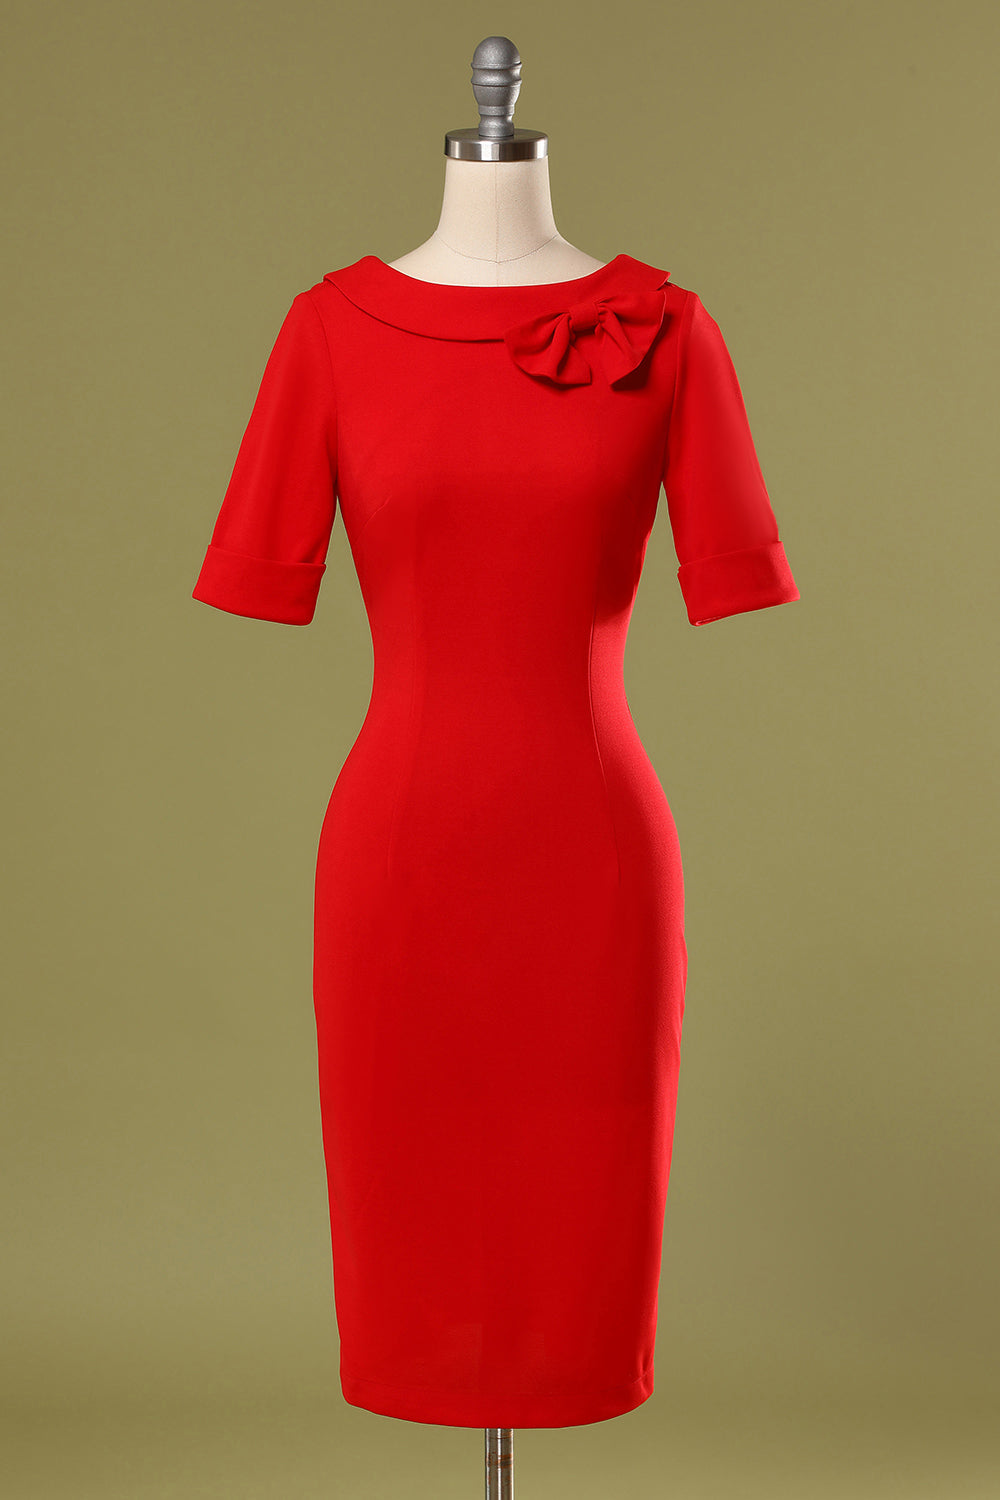 Red Bodycon Party Dress